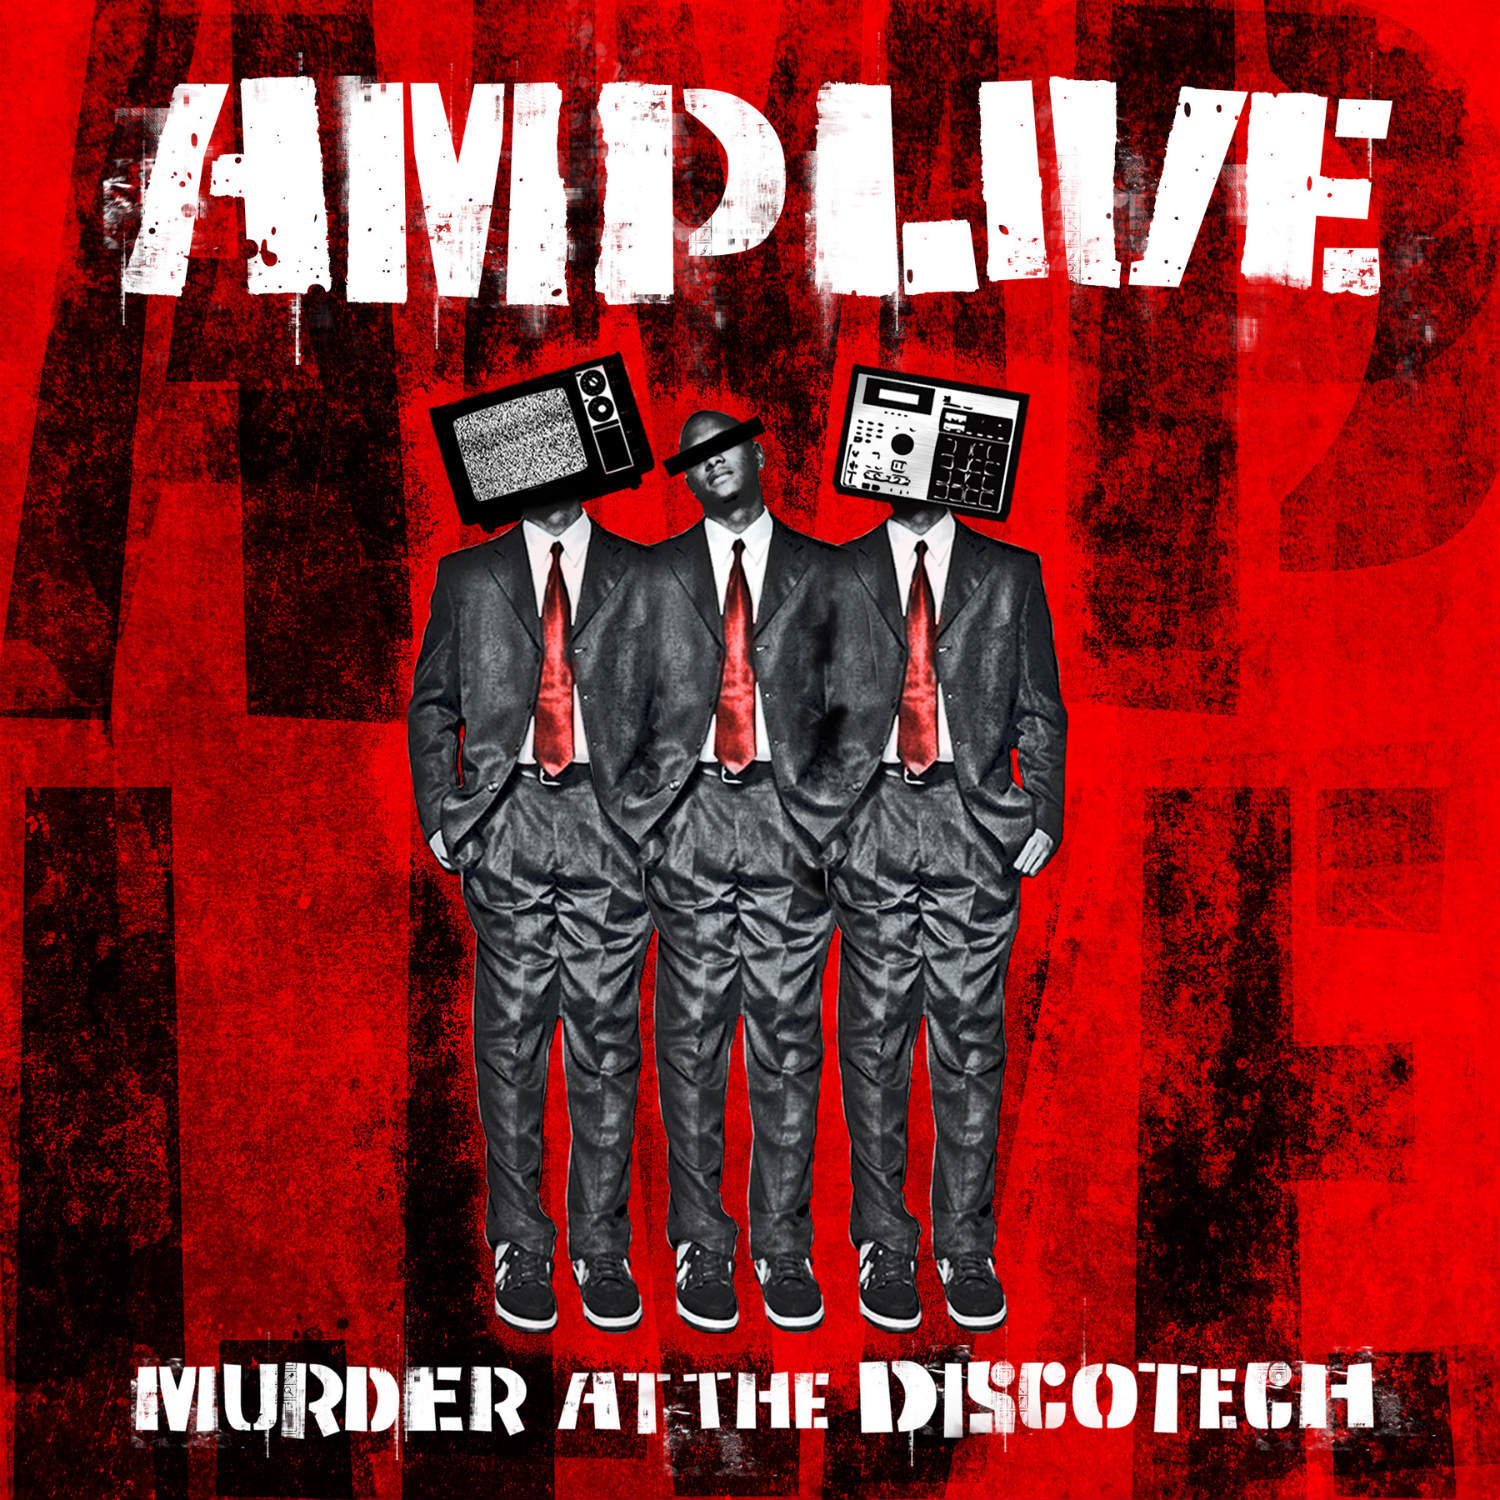 Amp Live - Murder at the Discotech